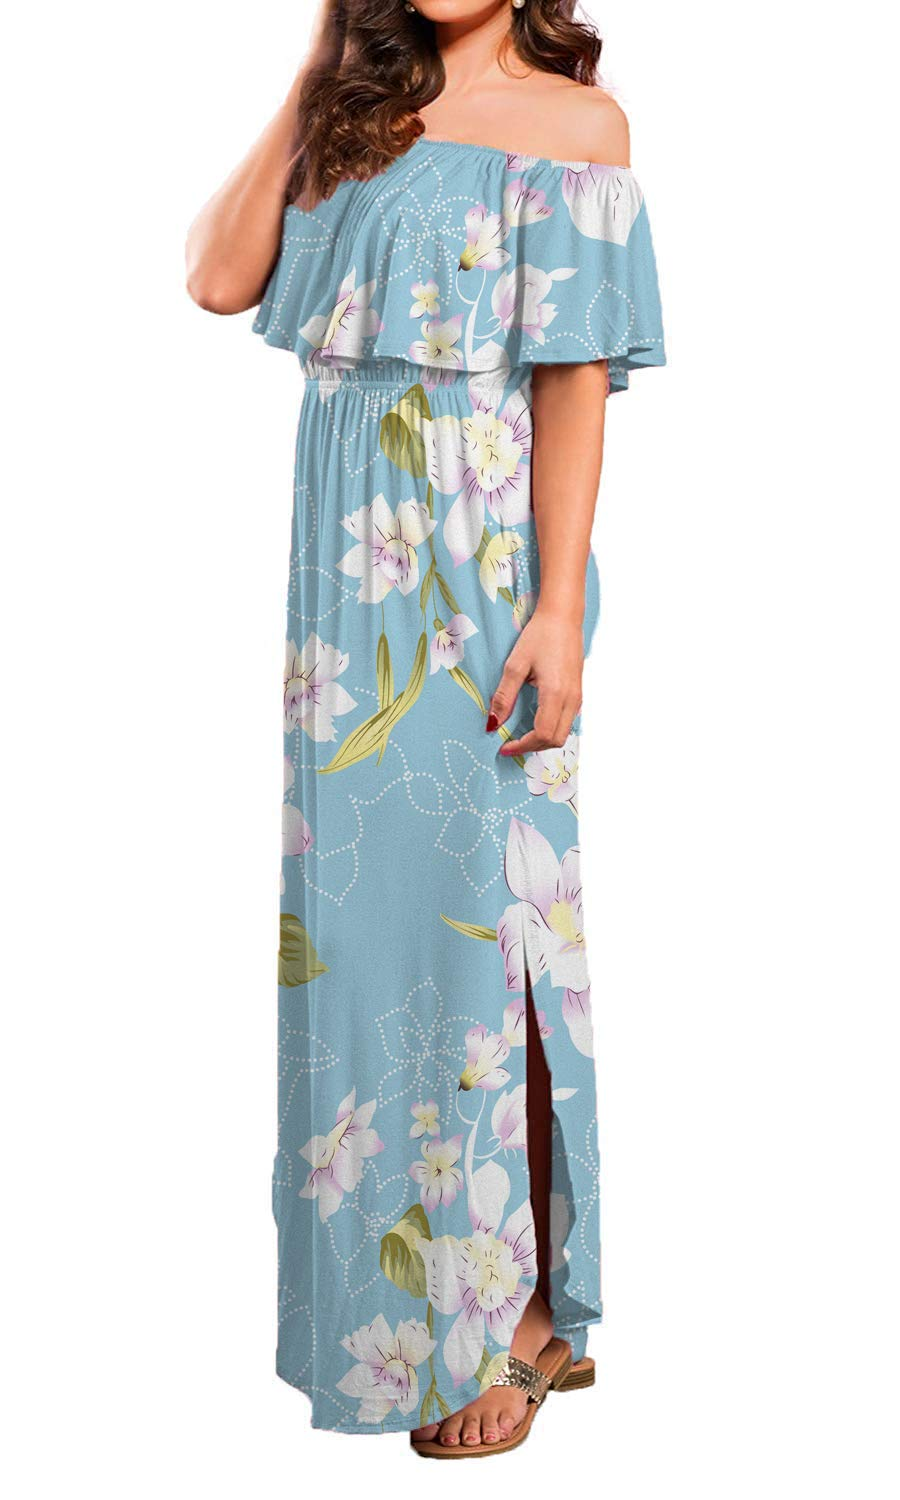 Donnalla Womens Off The Shoulder Summer Side Split Dress Ruffle Beach Long Maxi Dresses with Pockets(Blue Floral Large)